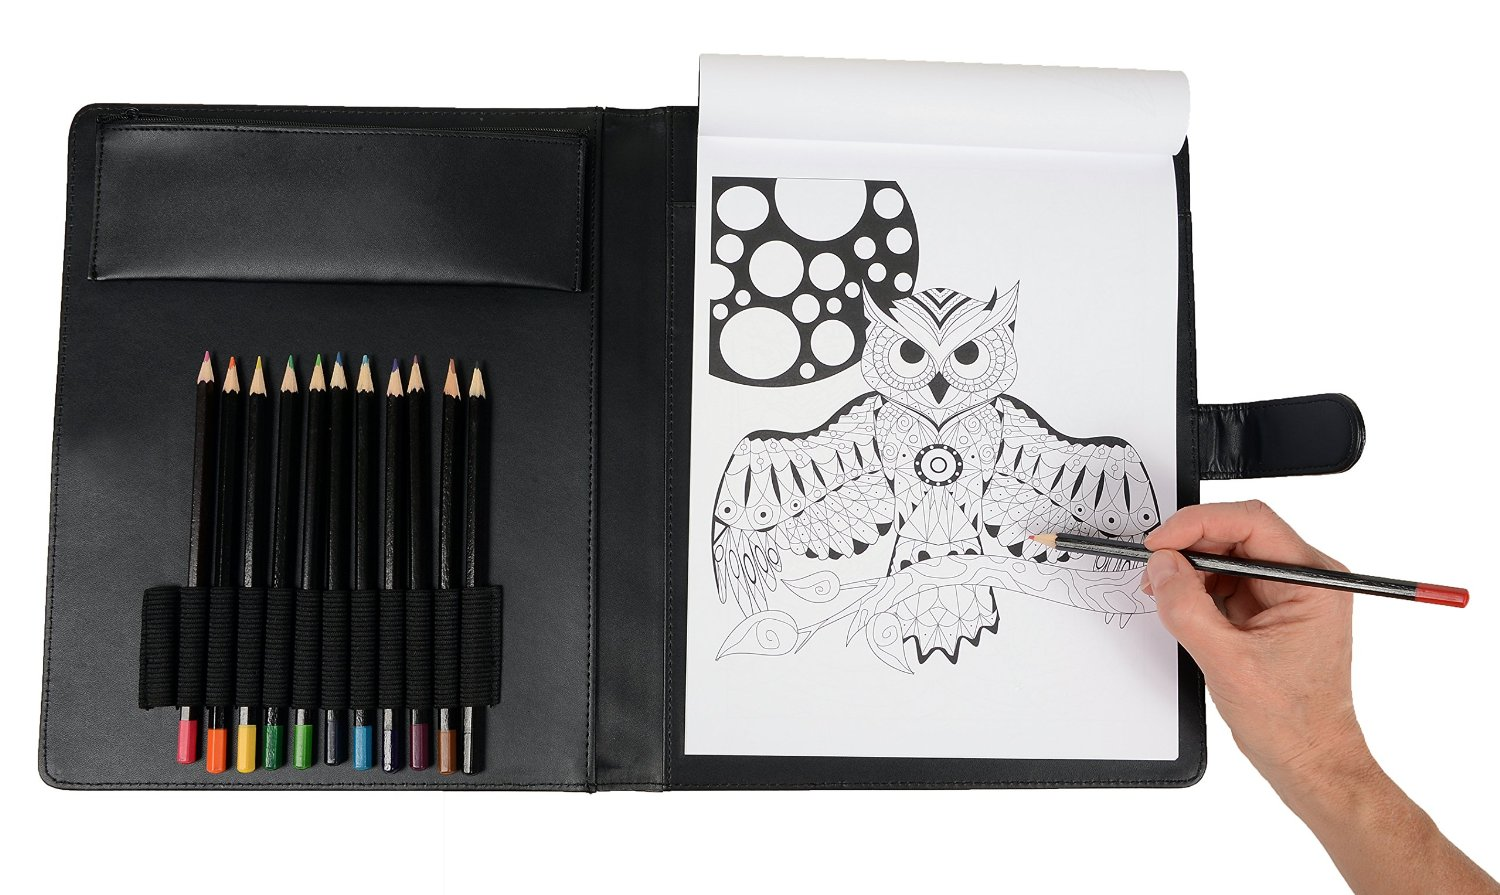 An Adult Coloring Book Colored Pencils A Small Zip Closed Pouch Sharpener And Very Nice Portable Carrying Case With Magnetic Closure